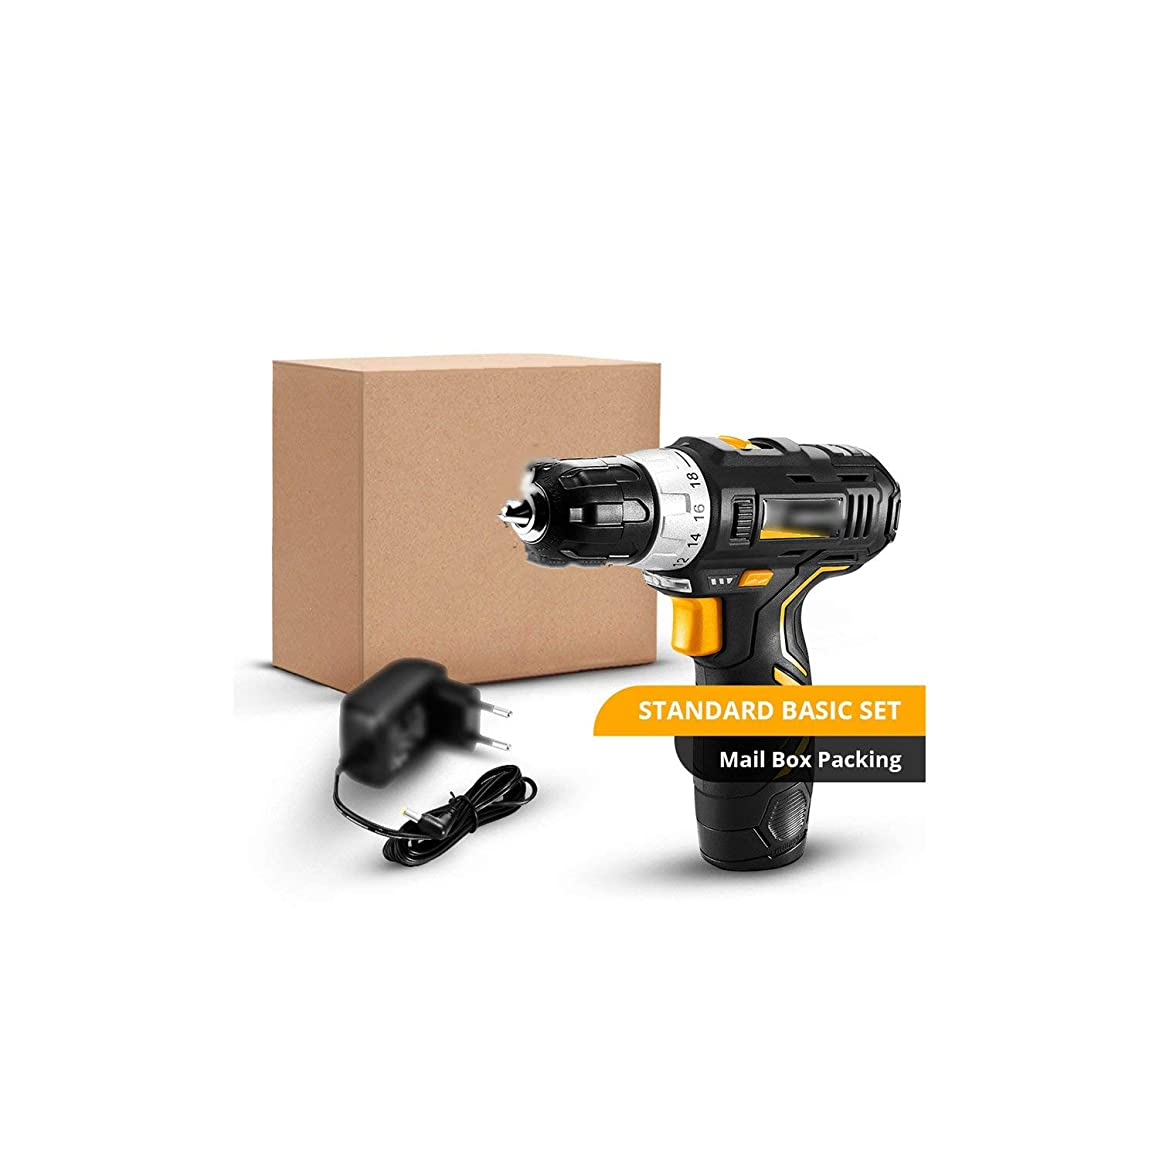 Drill Max Electric Screwdriver Cordless Drill Mini Wireless Power Driver Dc Lithium-Ion Battery 3/8-Inch 2-Speed,Czech Republic,Set1